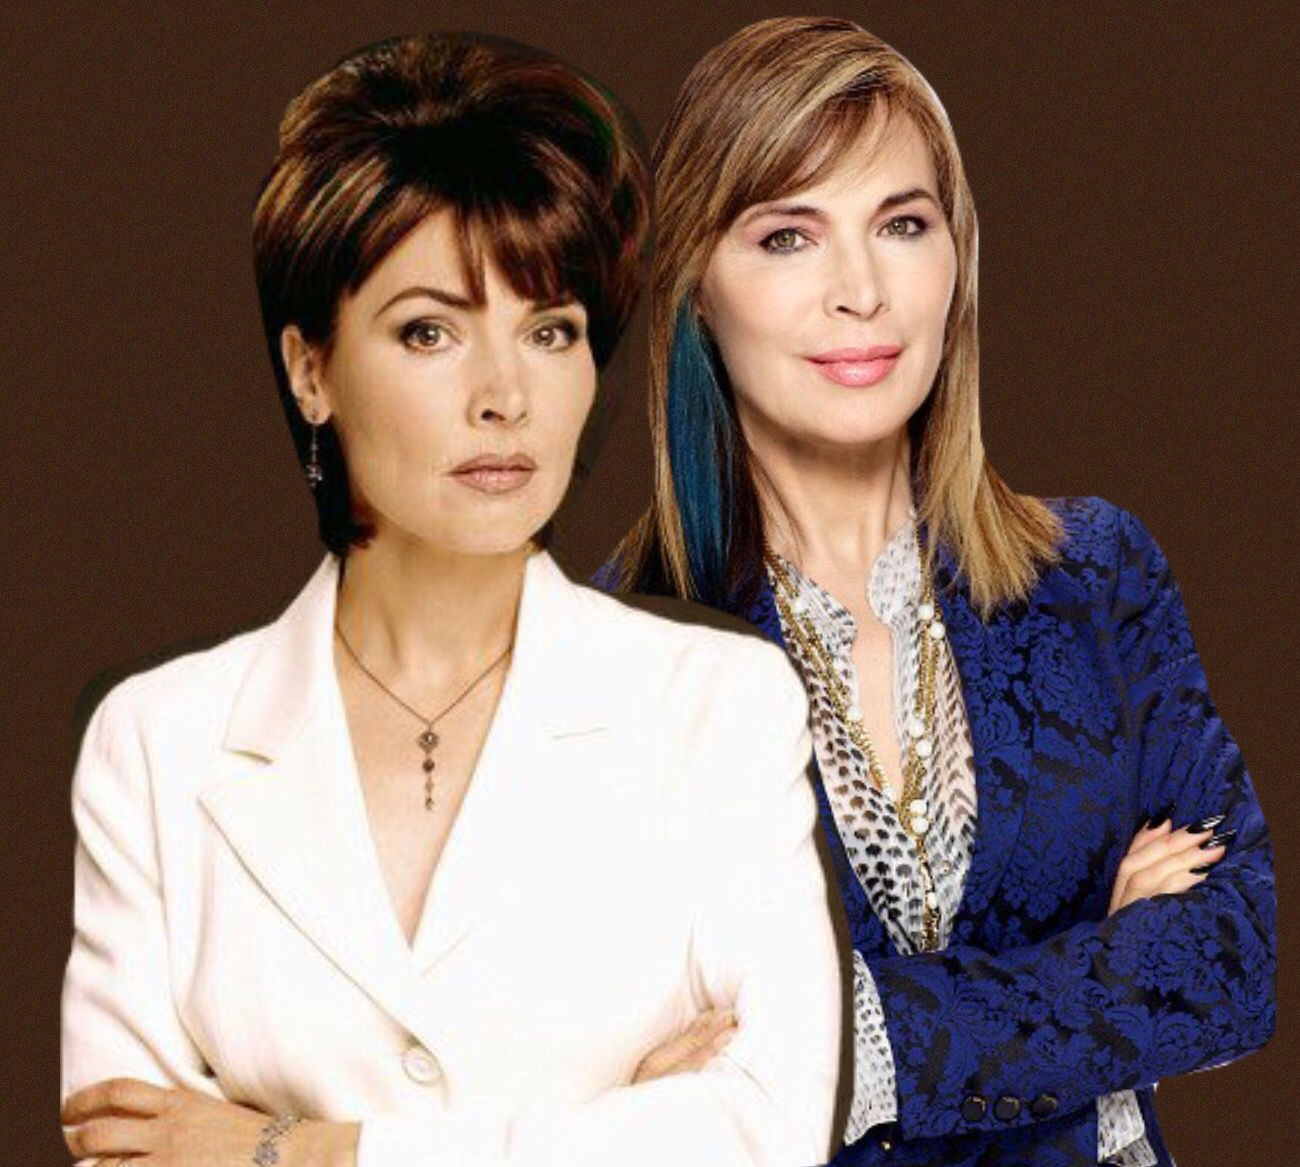 Lauren Koslow Then And Now Trending Haircuts Kate Roberts Lauren Kate We are celebrating rob's birthday with a very special guest, lauren koslow, who is best known for her role on daytime's, days of our lives, as kate dimera. kate roberts lauren kate